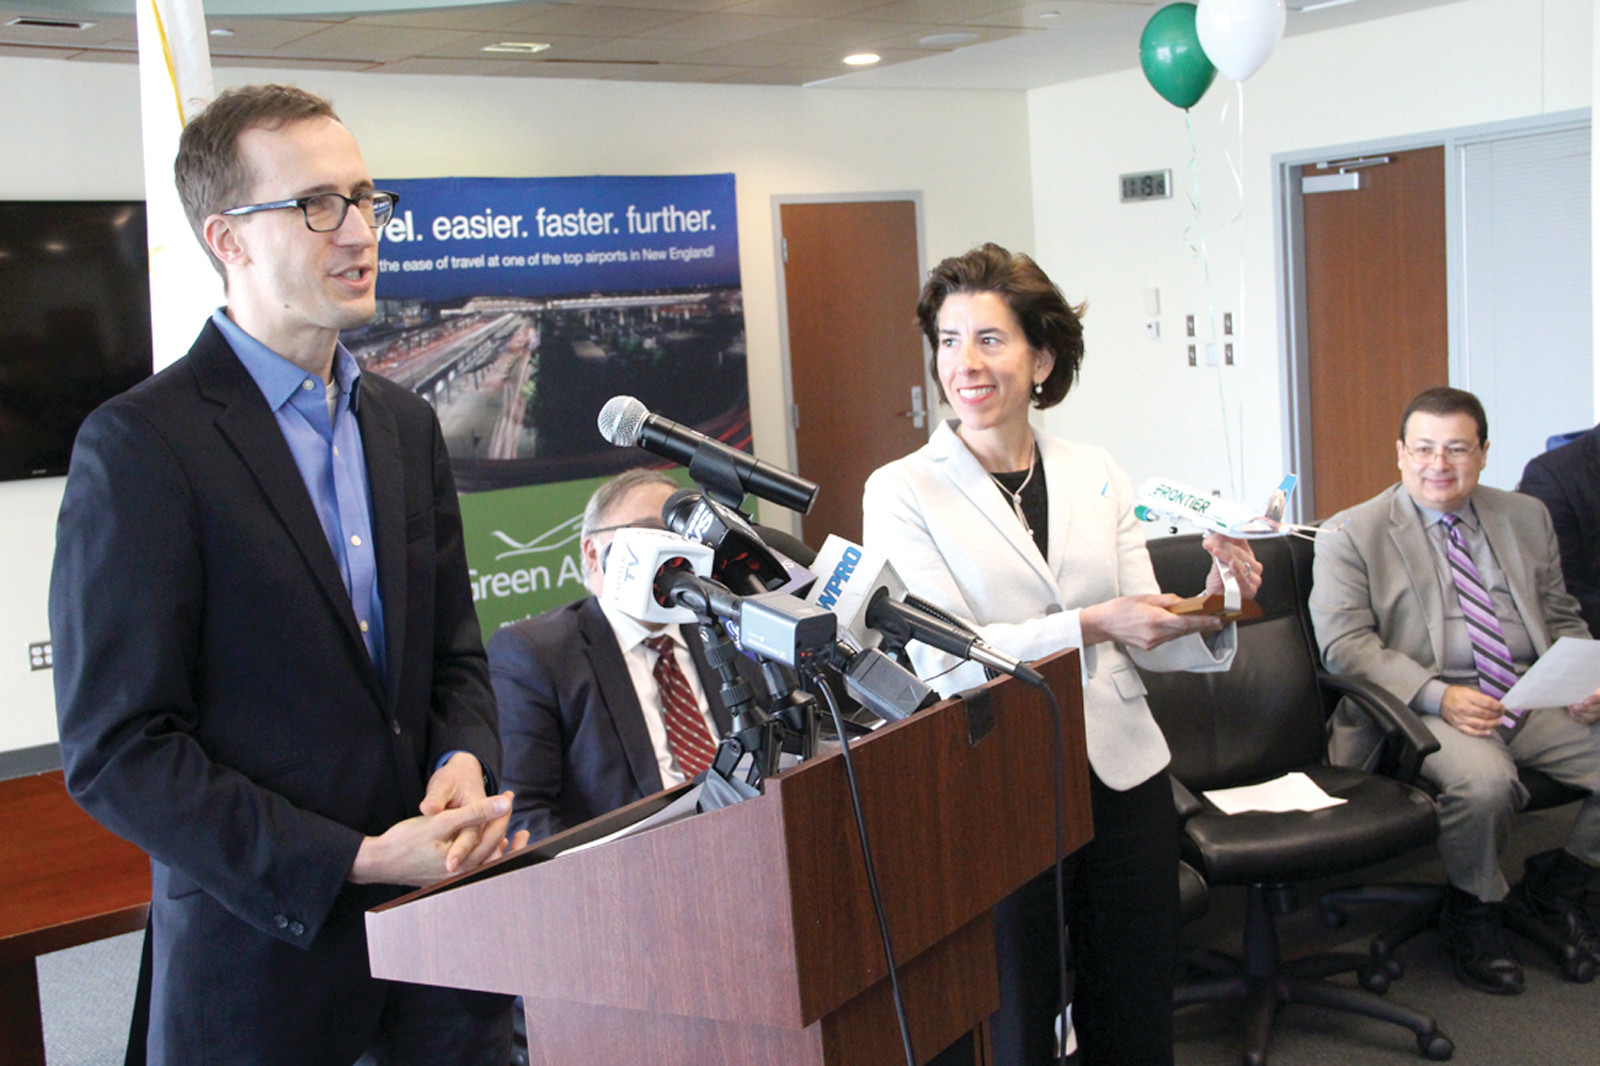 COMING TO GREEN: Daniel Shurz, Senior Vice President – Commercial for Frontier Airlines, outlines the service the company will bring to Green Airport starting Aug. 14 as Gov. Gina Raimondo looks on.